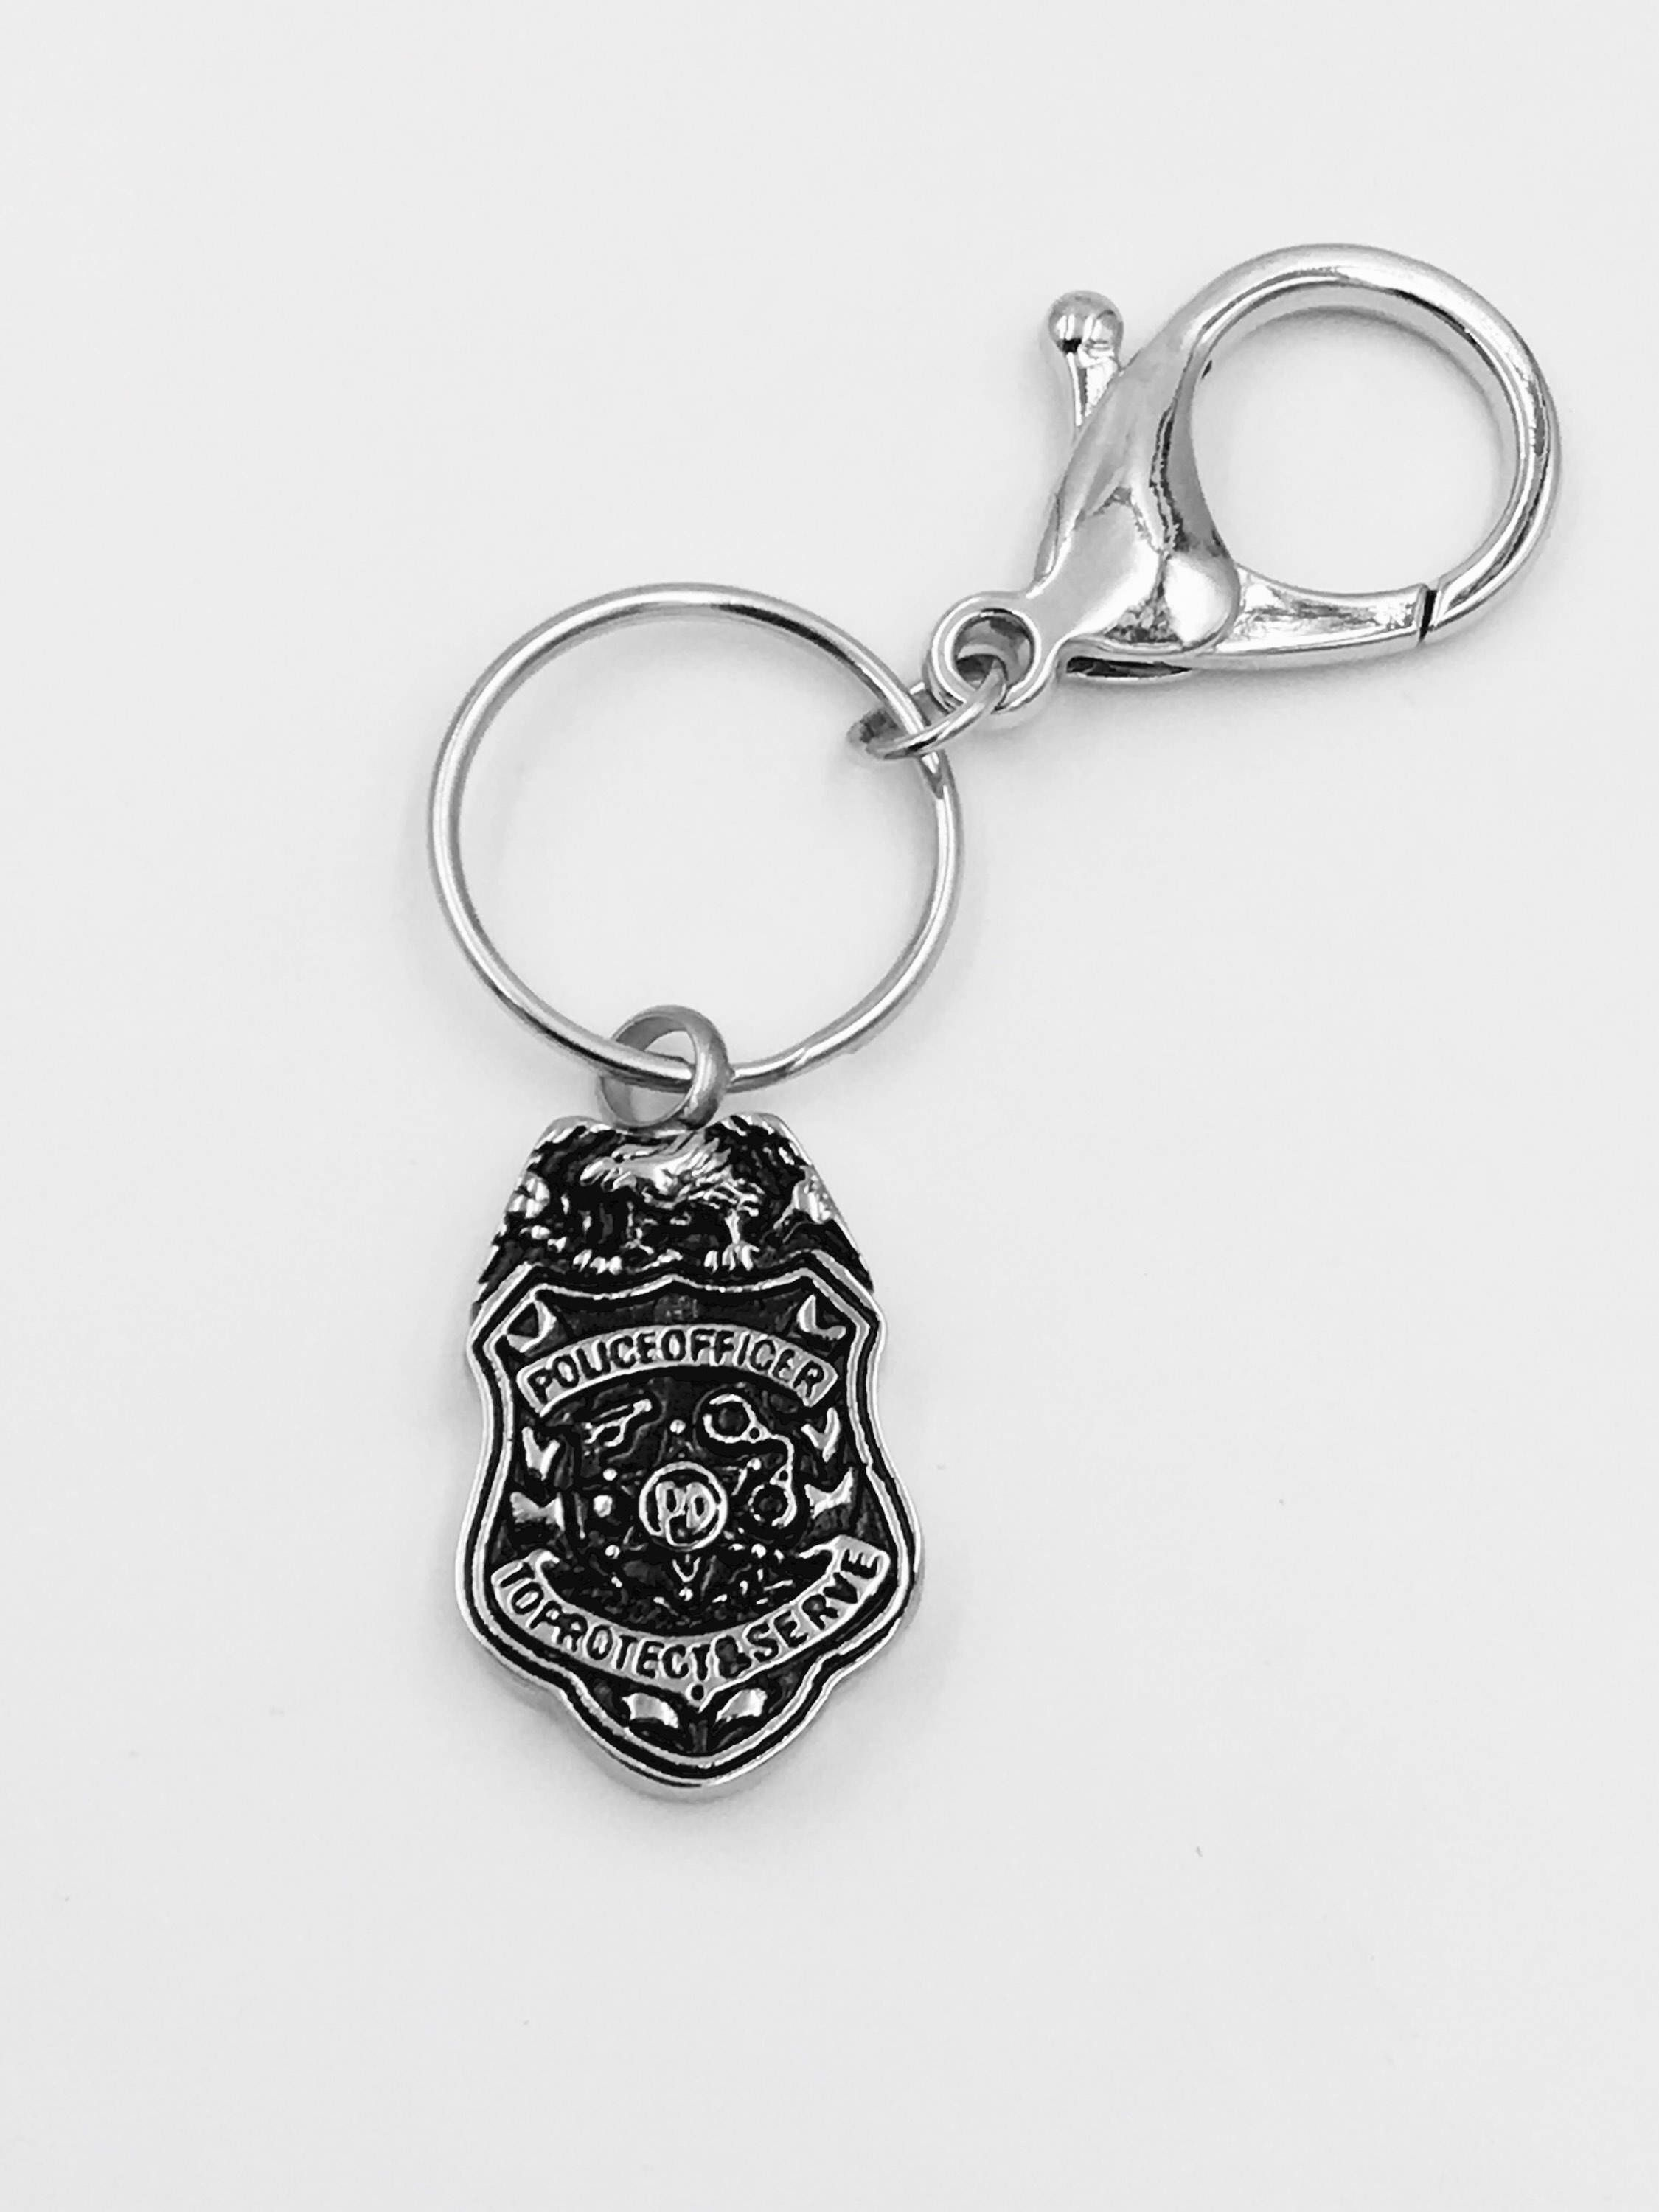 chain police men itm policechainbadge s store pendant child boys categories adult officer accessory costume clip mens badge